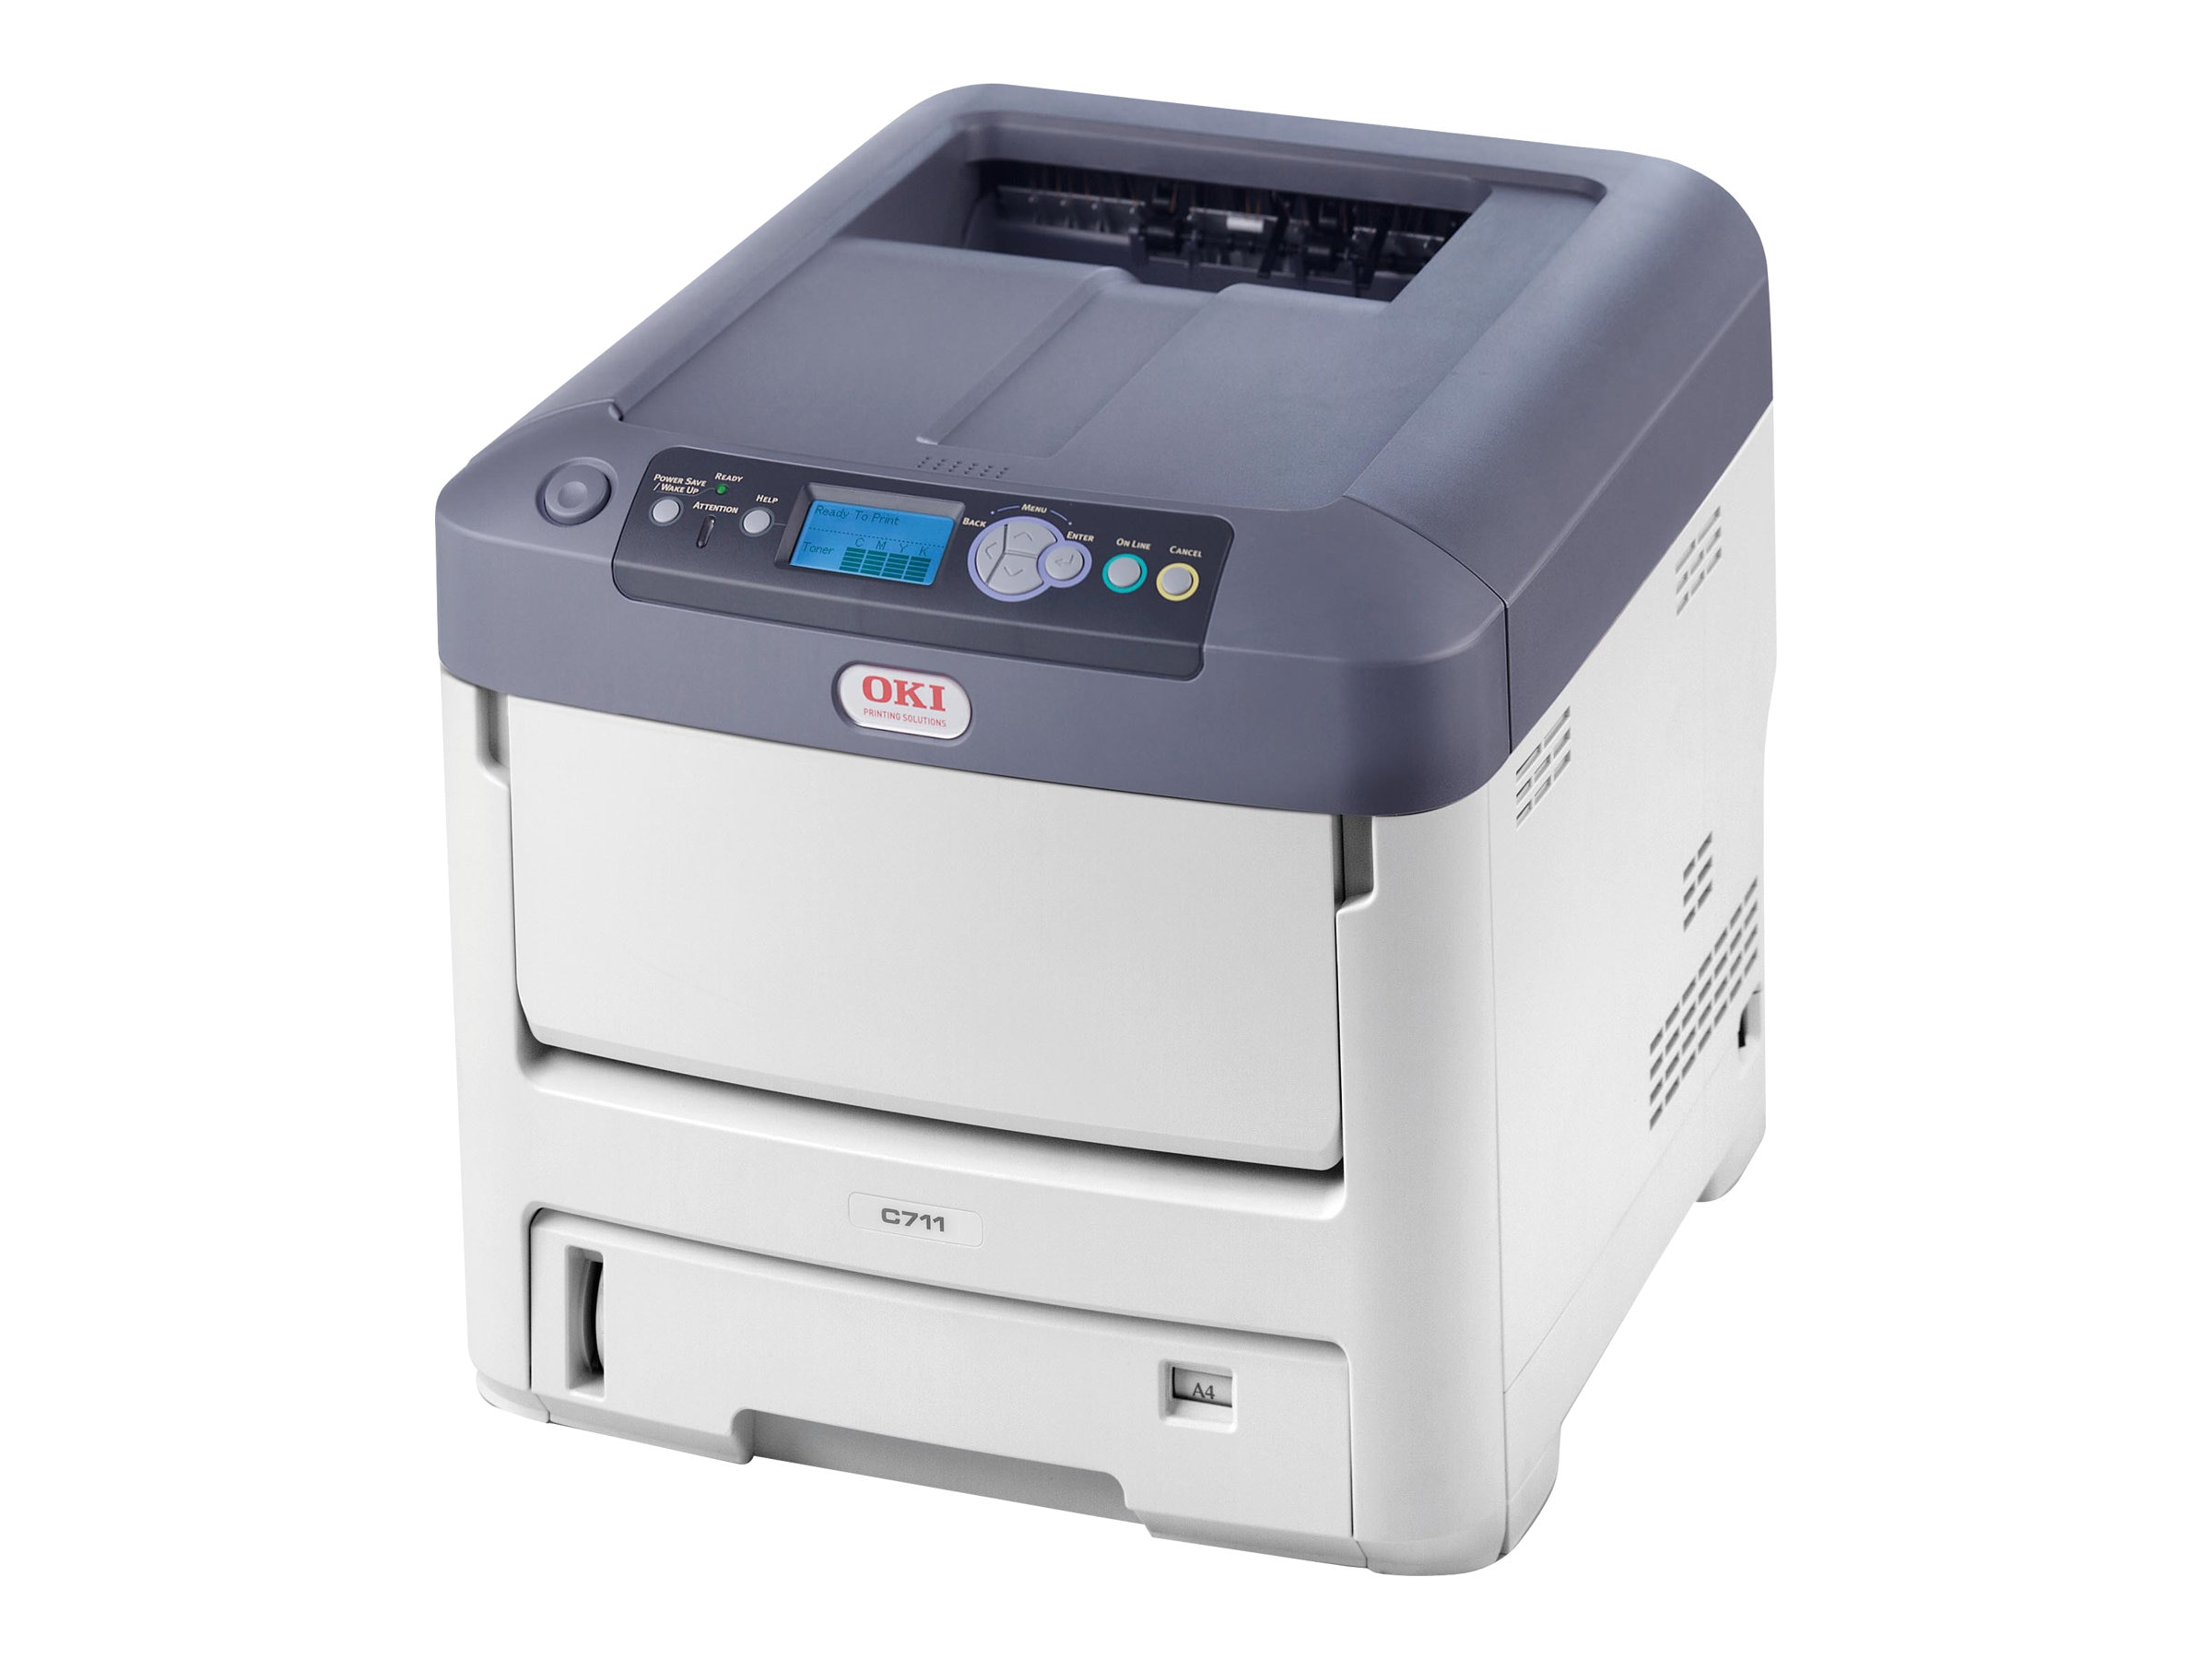 Oki C711n Digital Color Printer - 220V (Mulitilingual), 62446802